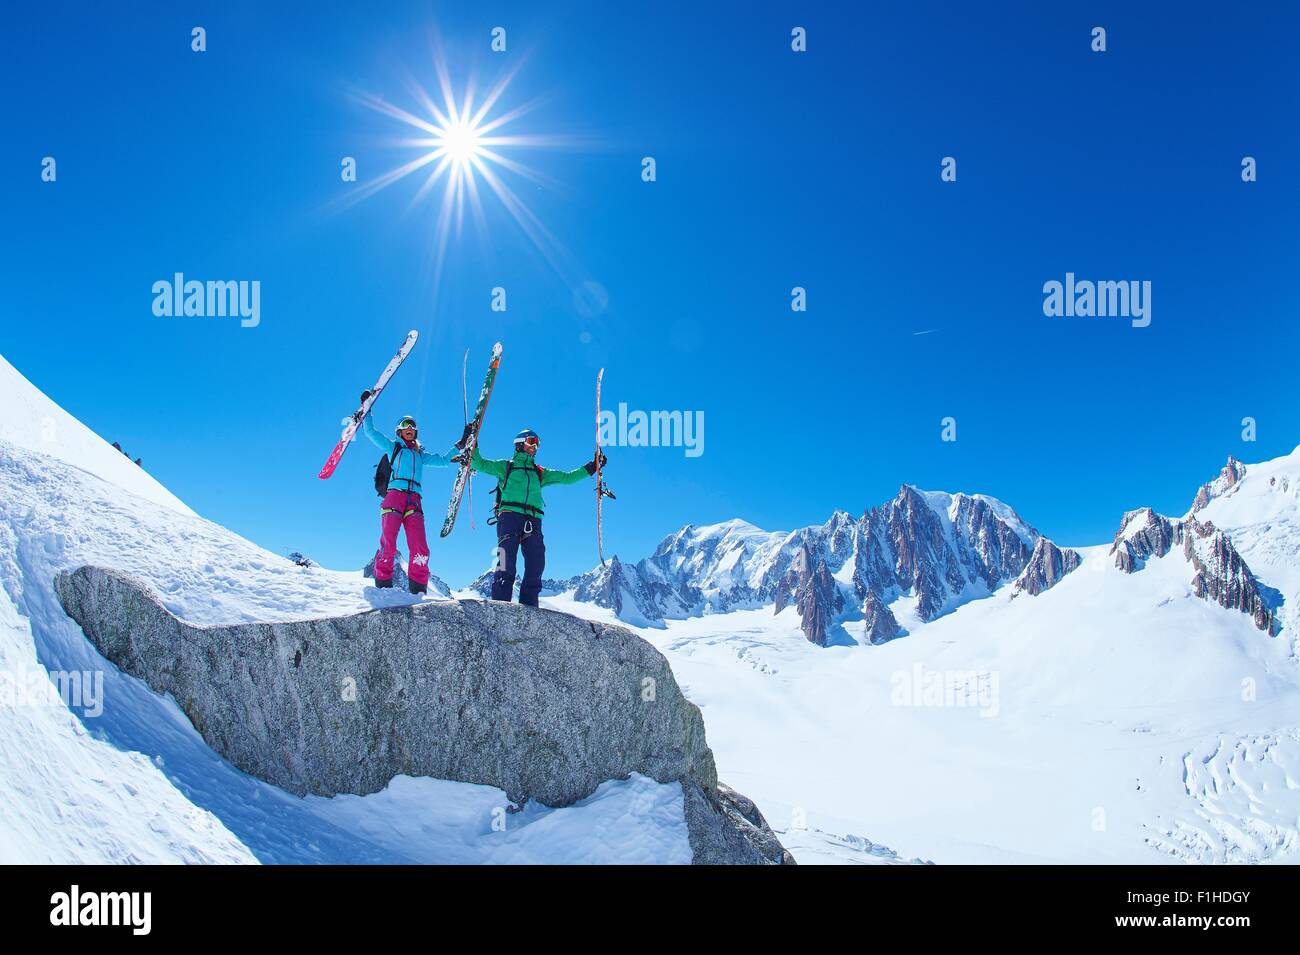 Male and female skiers holding up ski's on Mont Blanc massif, Graian Alps, France - Stock Image